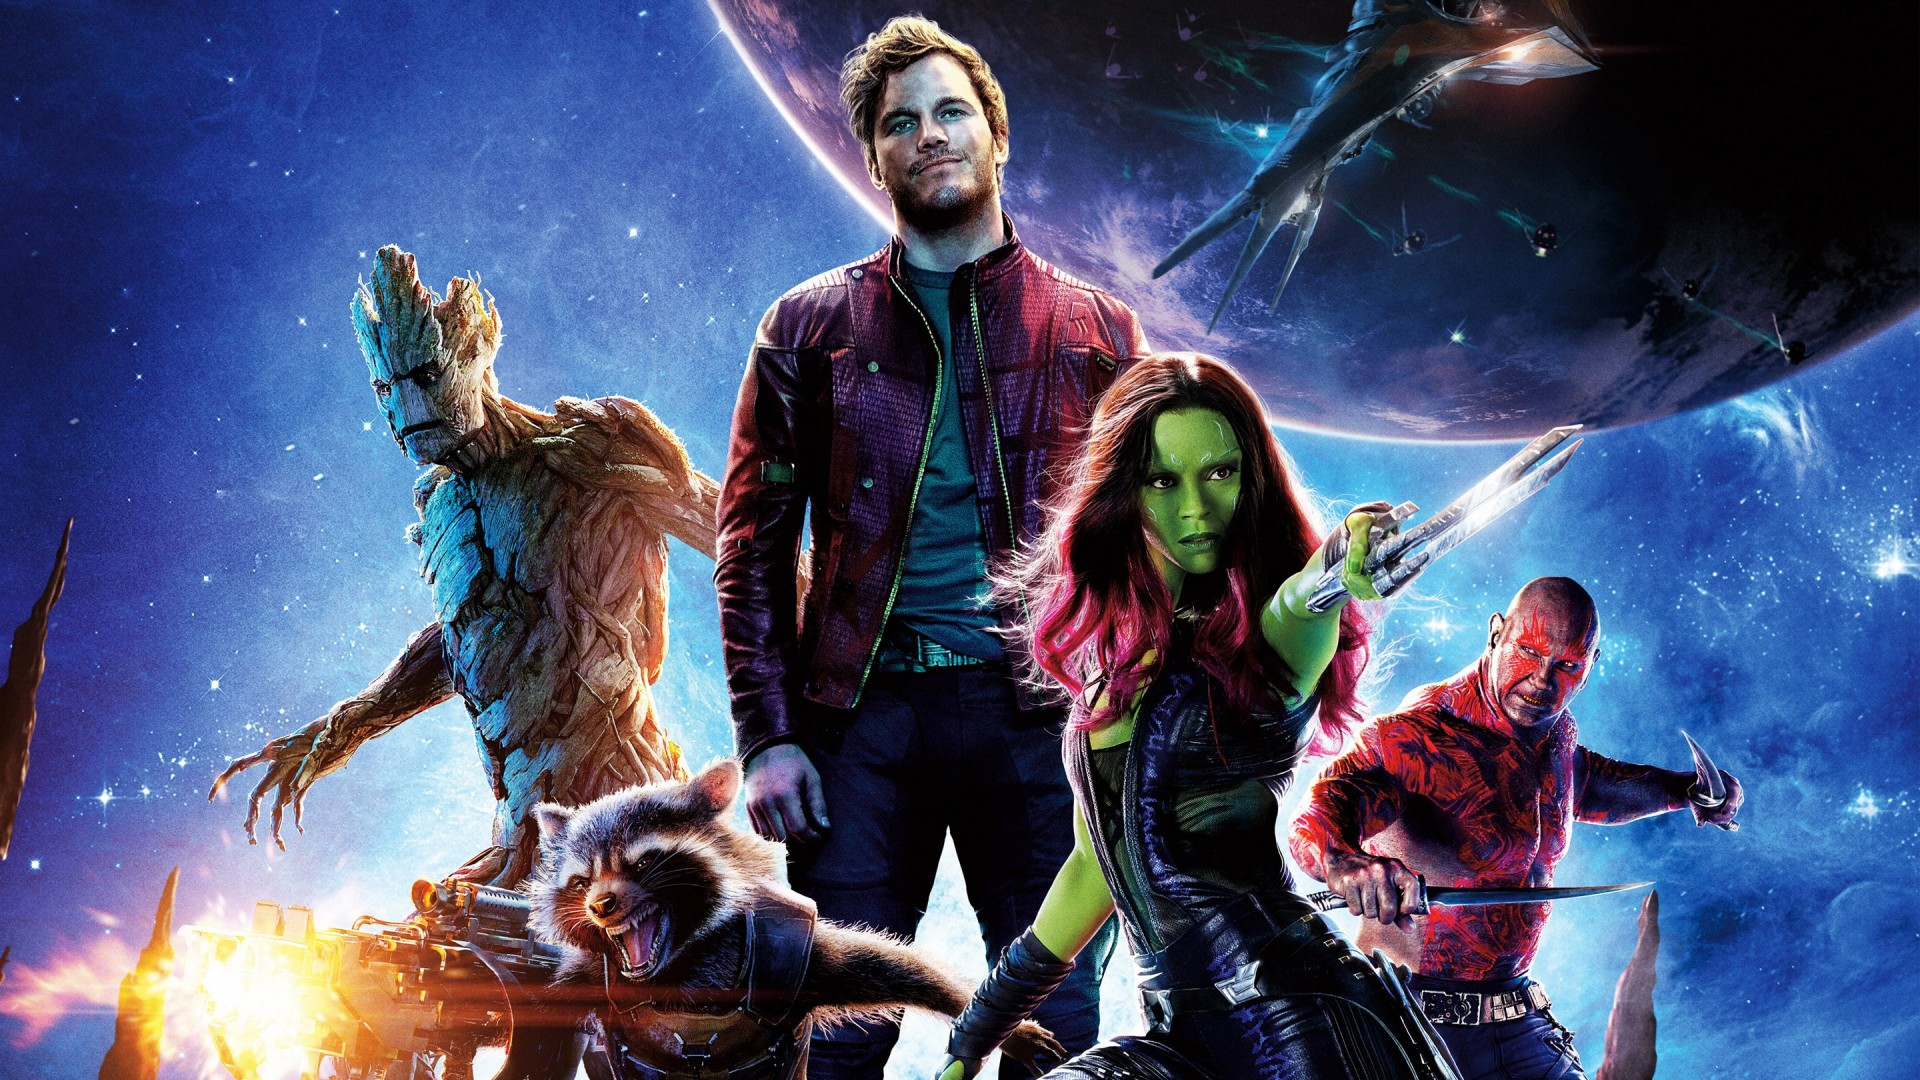 Guardians of the Galaxy Wallpaper for Desktop 1920x1080